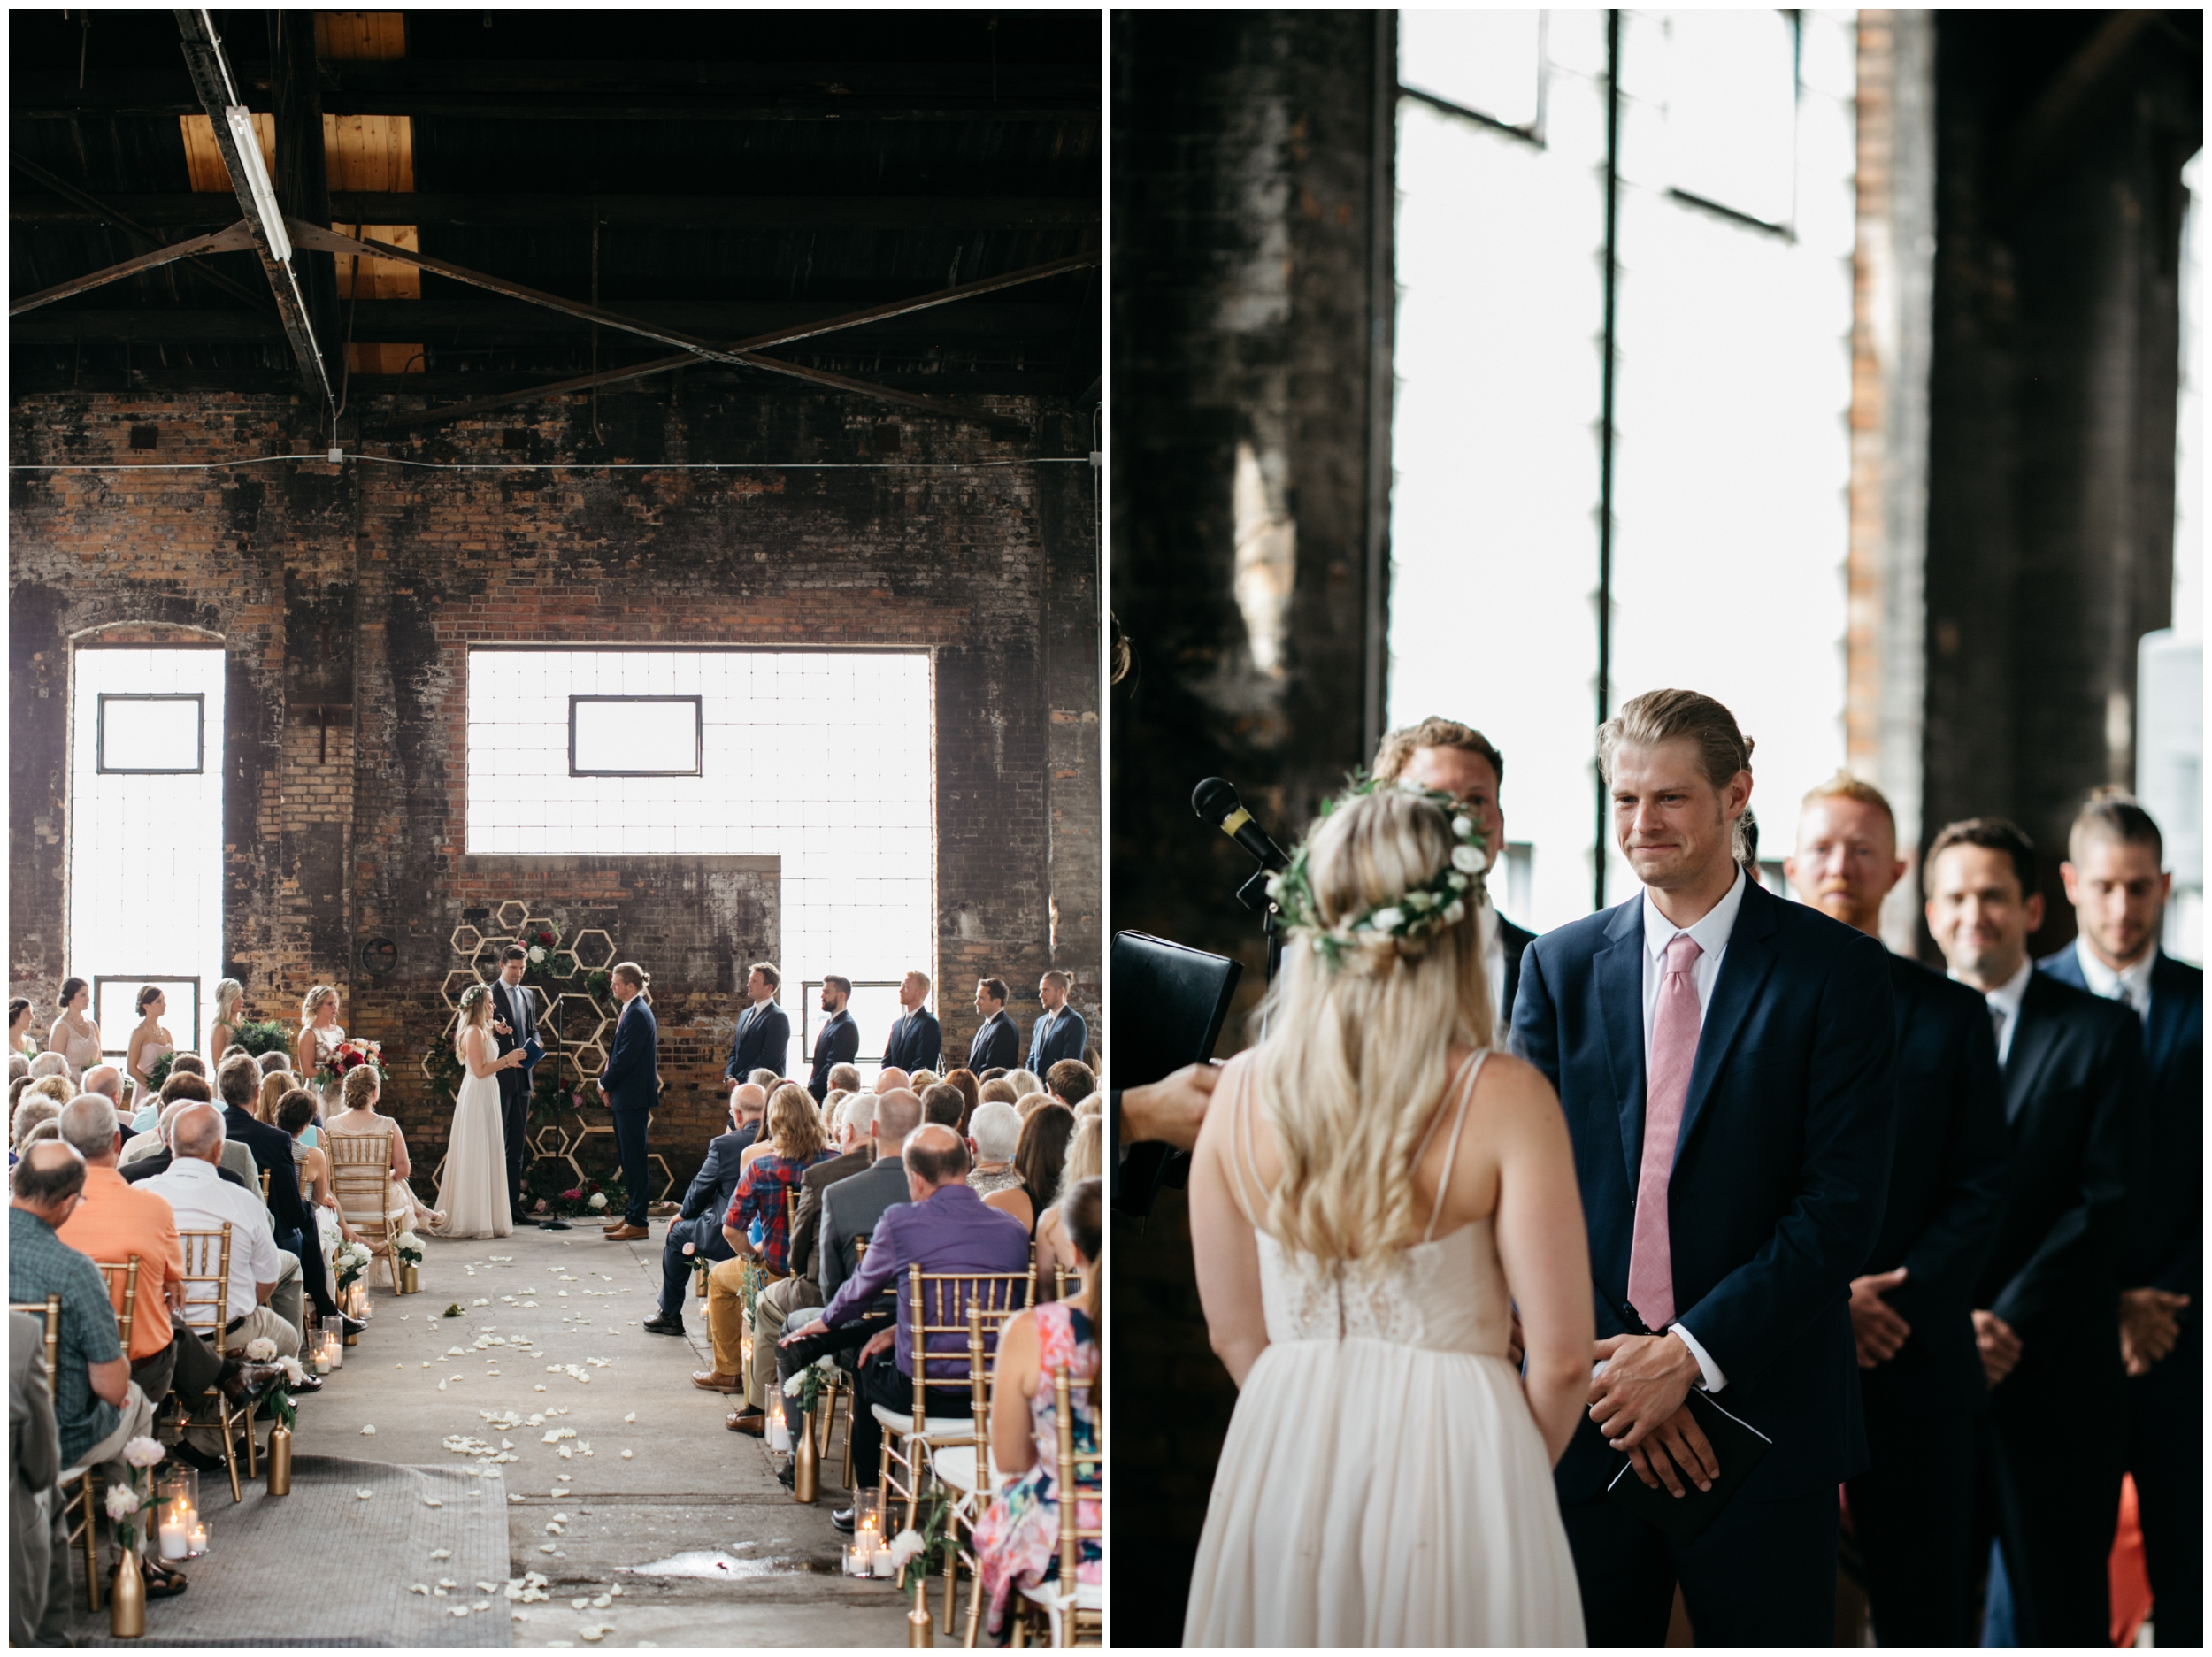 Romantic indoor wedding ceremony at the NP Event Space